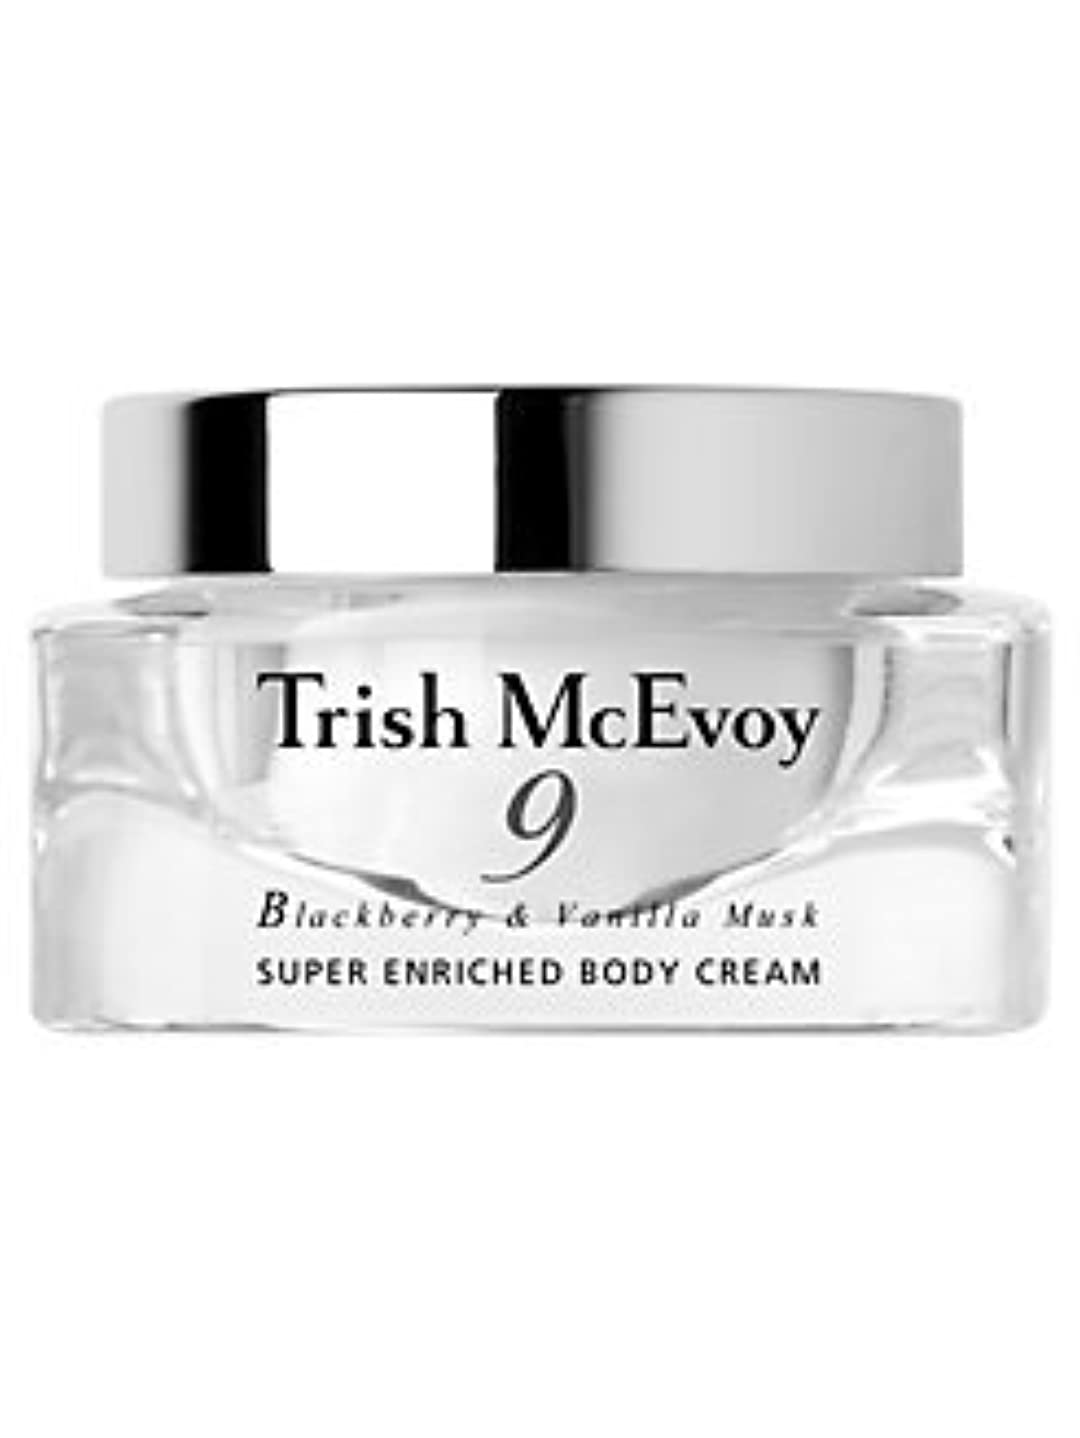 No.9 Blackberry & Vanilla Musk (No.9 ブラックべリー&バニラ ムスク) 3.5 oz (105ml) Body Cream by Trish McEvoy